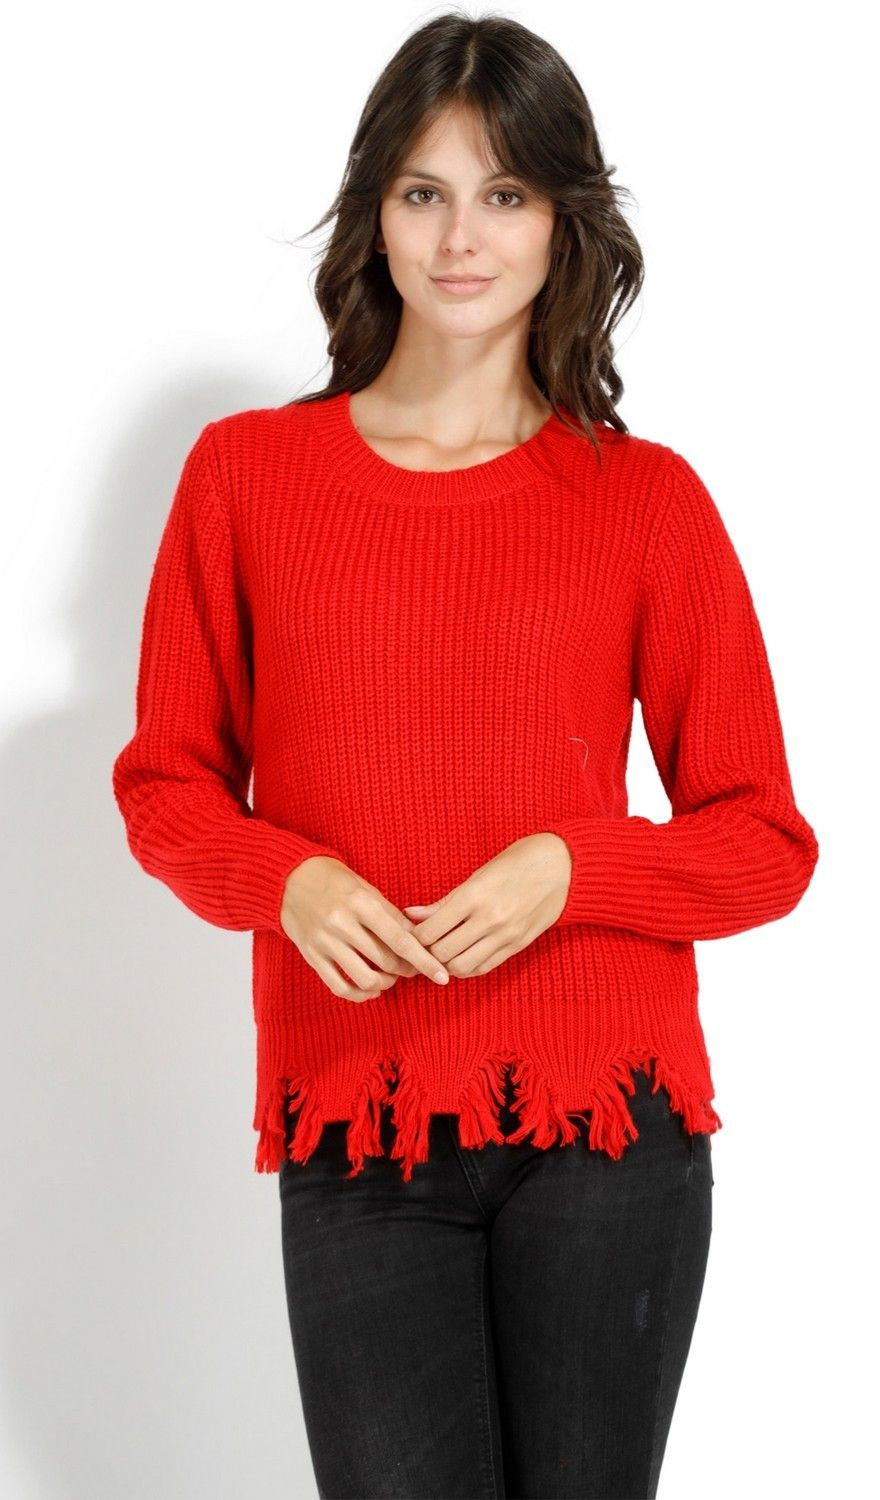 Assuili Crew Neck Ribbed Sweater with Distressed Hem in Red